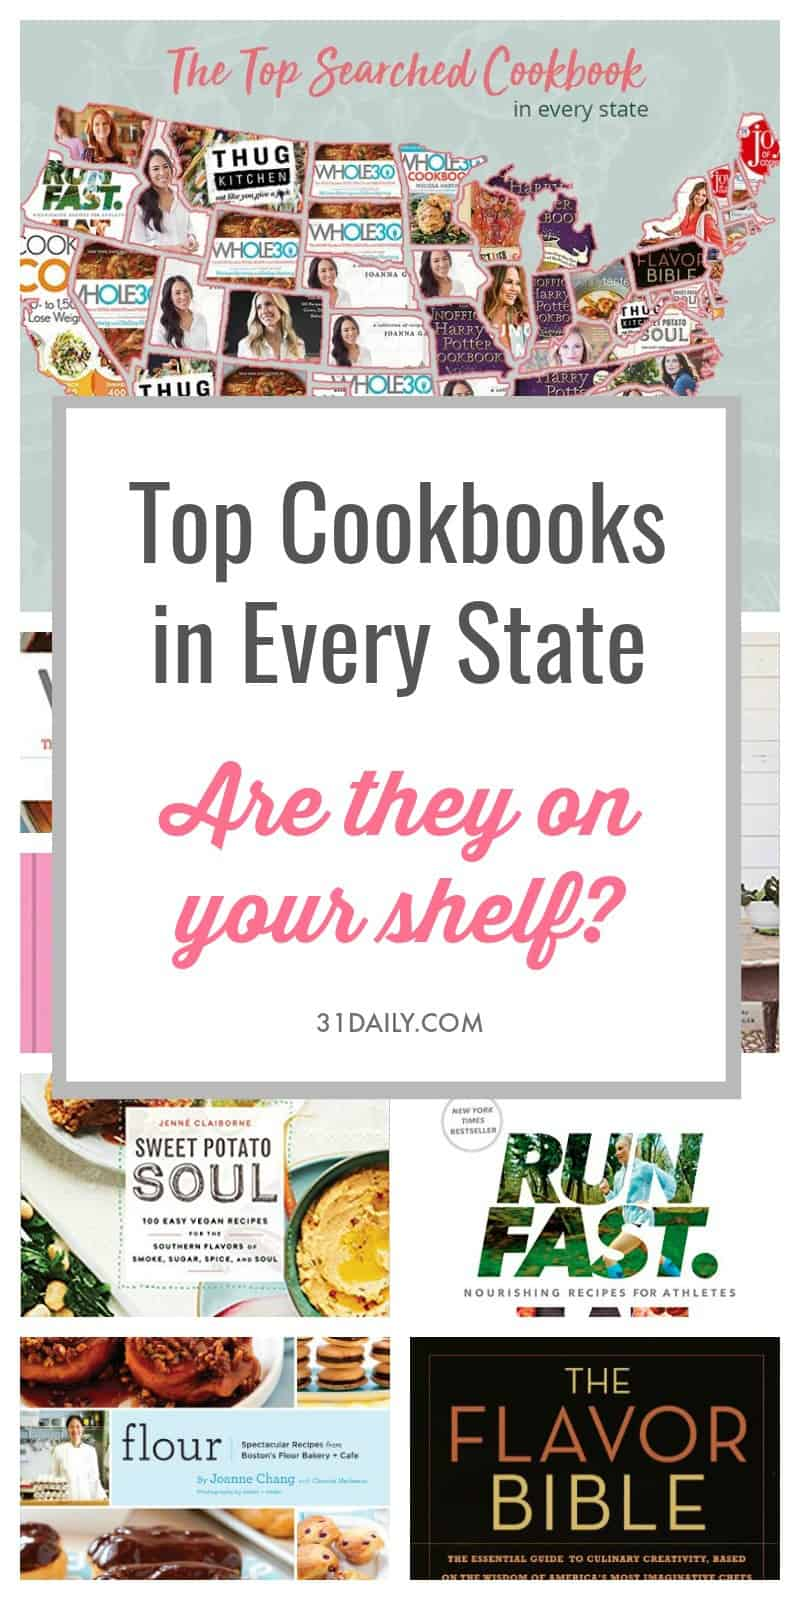 Most Searched Cookbooks This Year | 31Daily.com